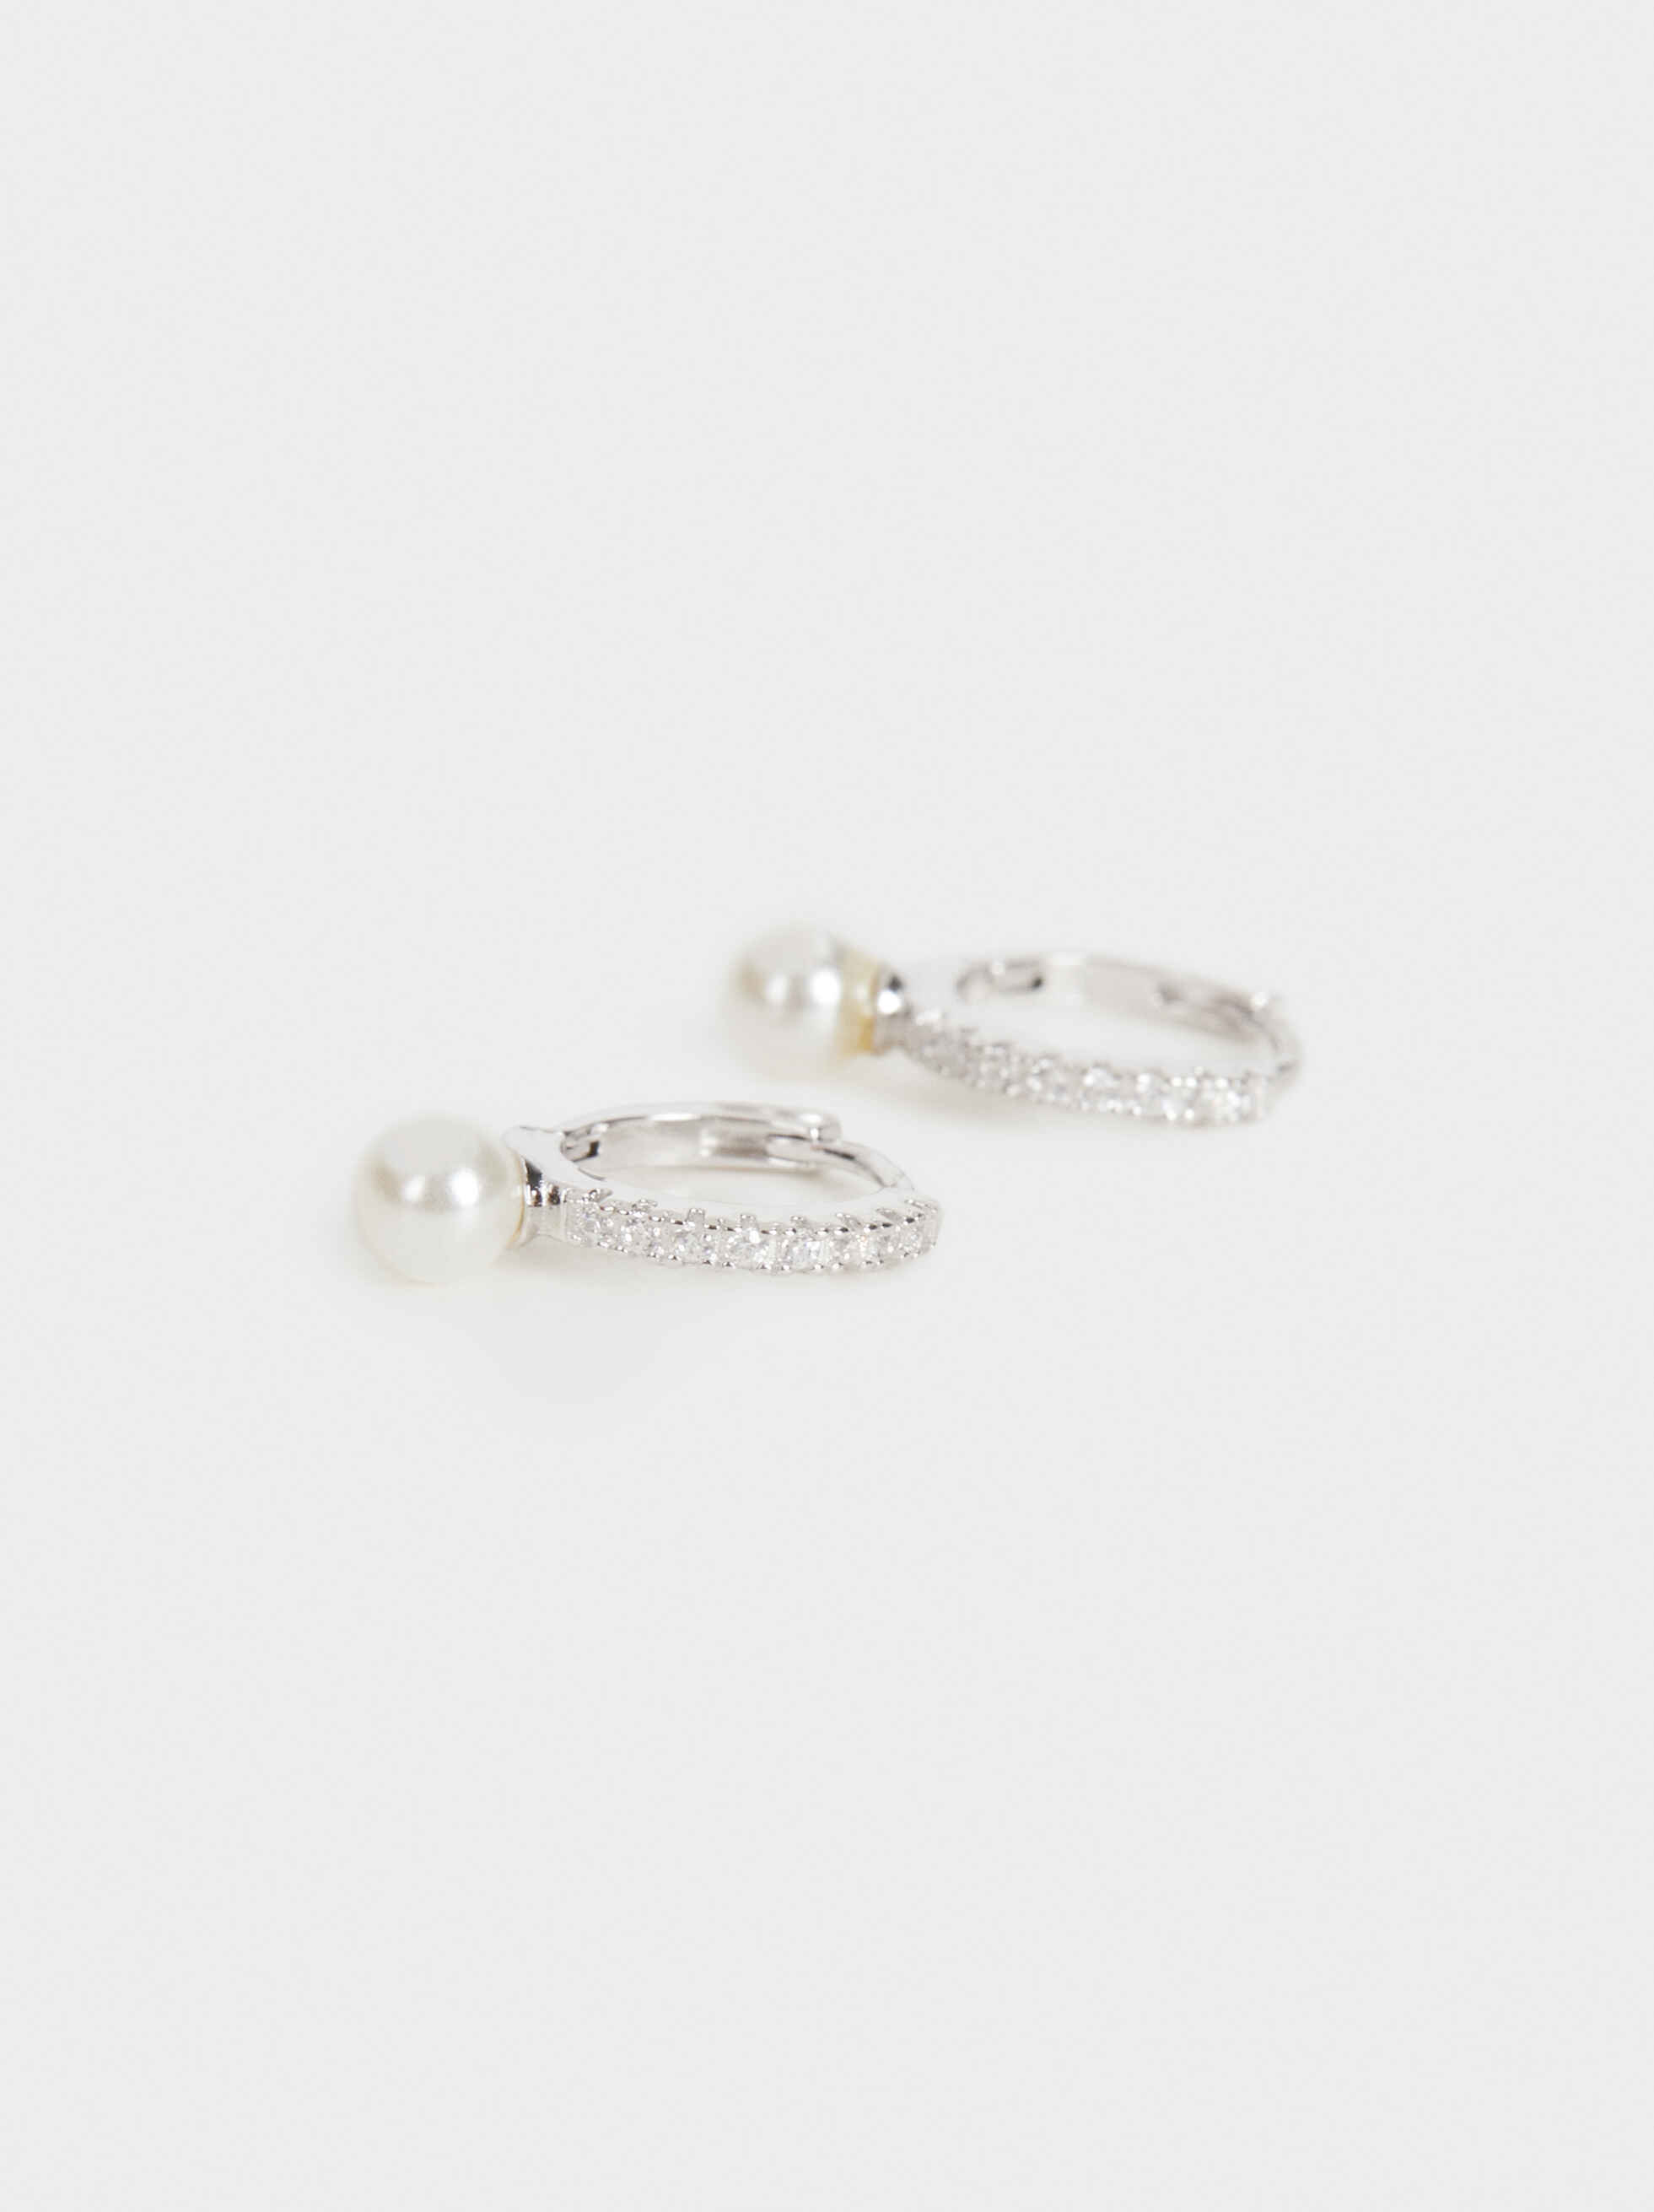 Small 925 Silver Faux Pearl Hoop Earrings, Beige, hi-res